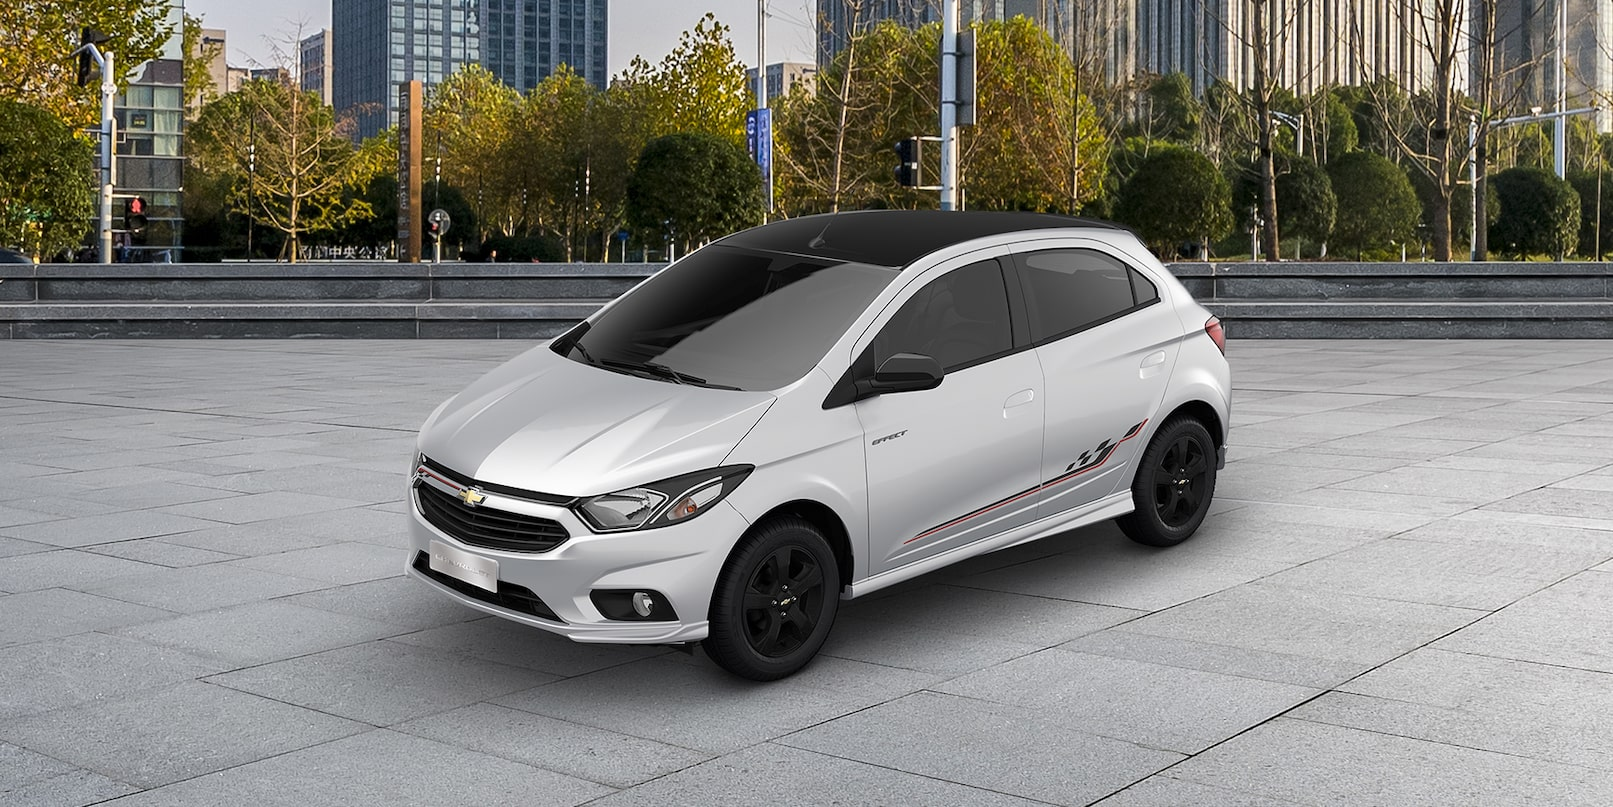 medium resolution of novo hatch chevrolet onix effect 2019 branco summit